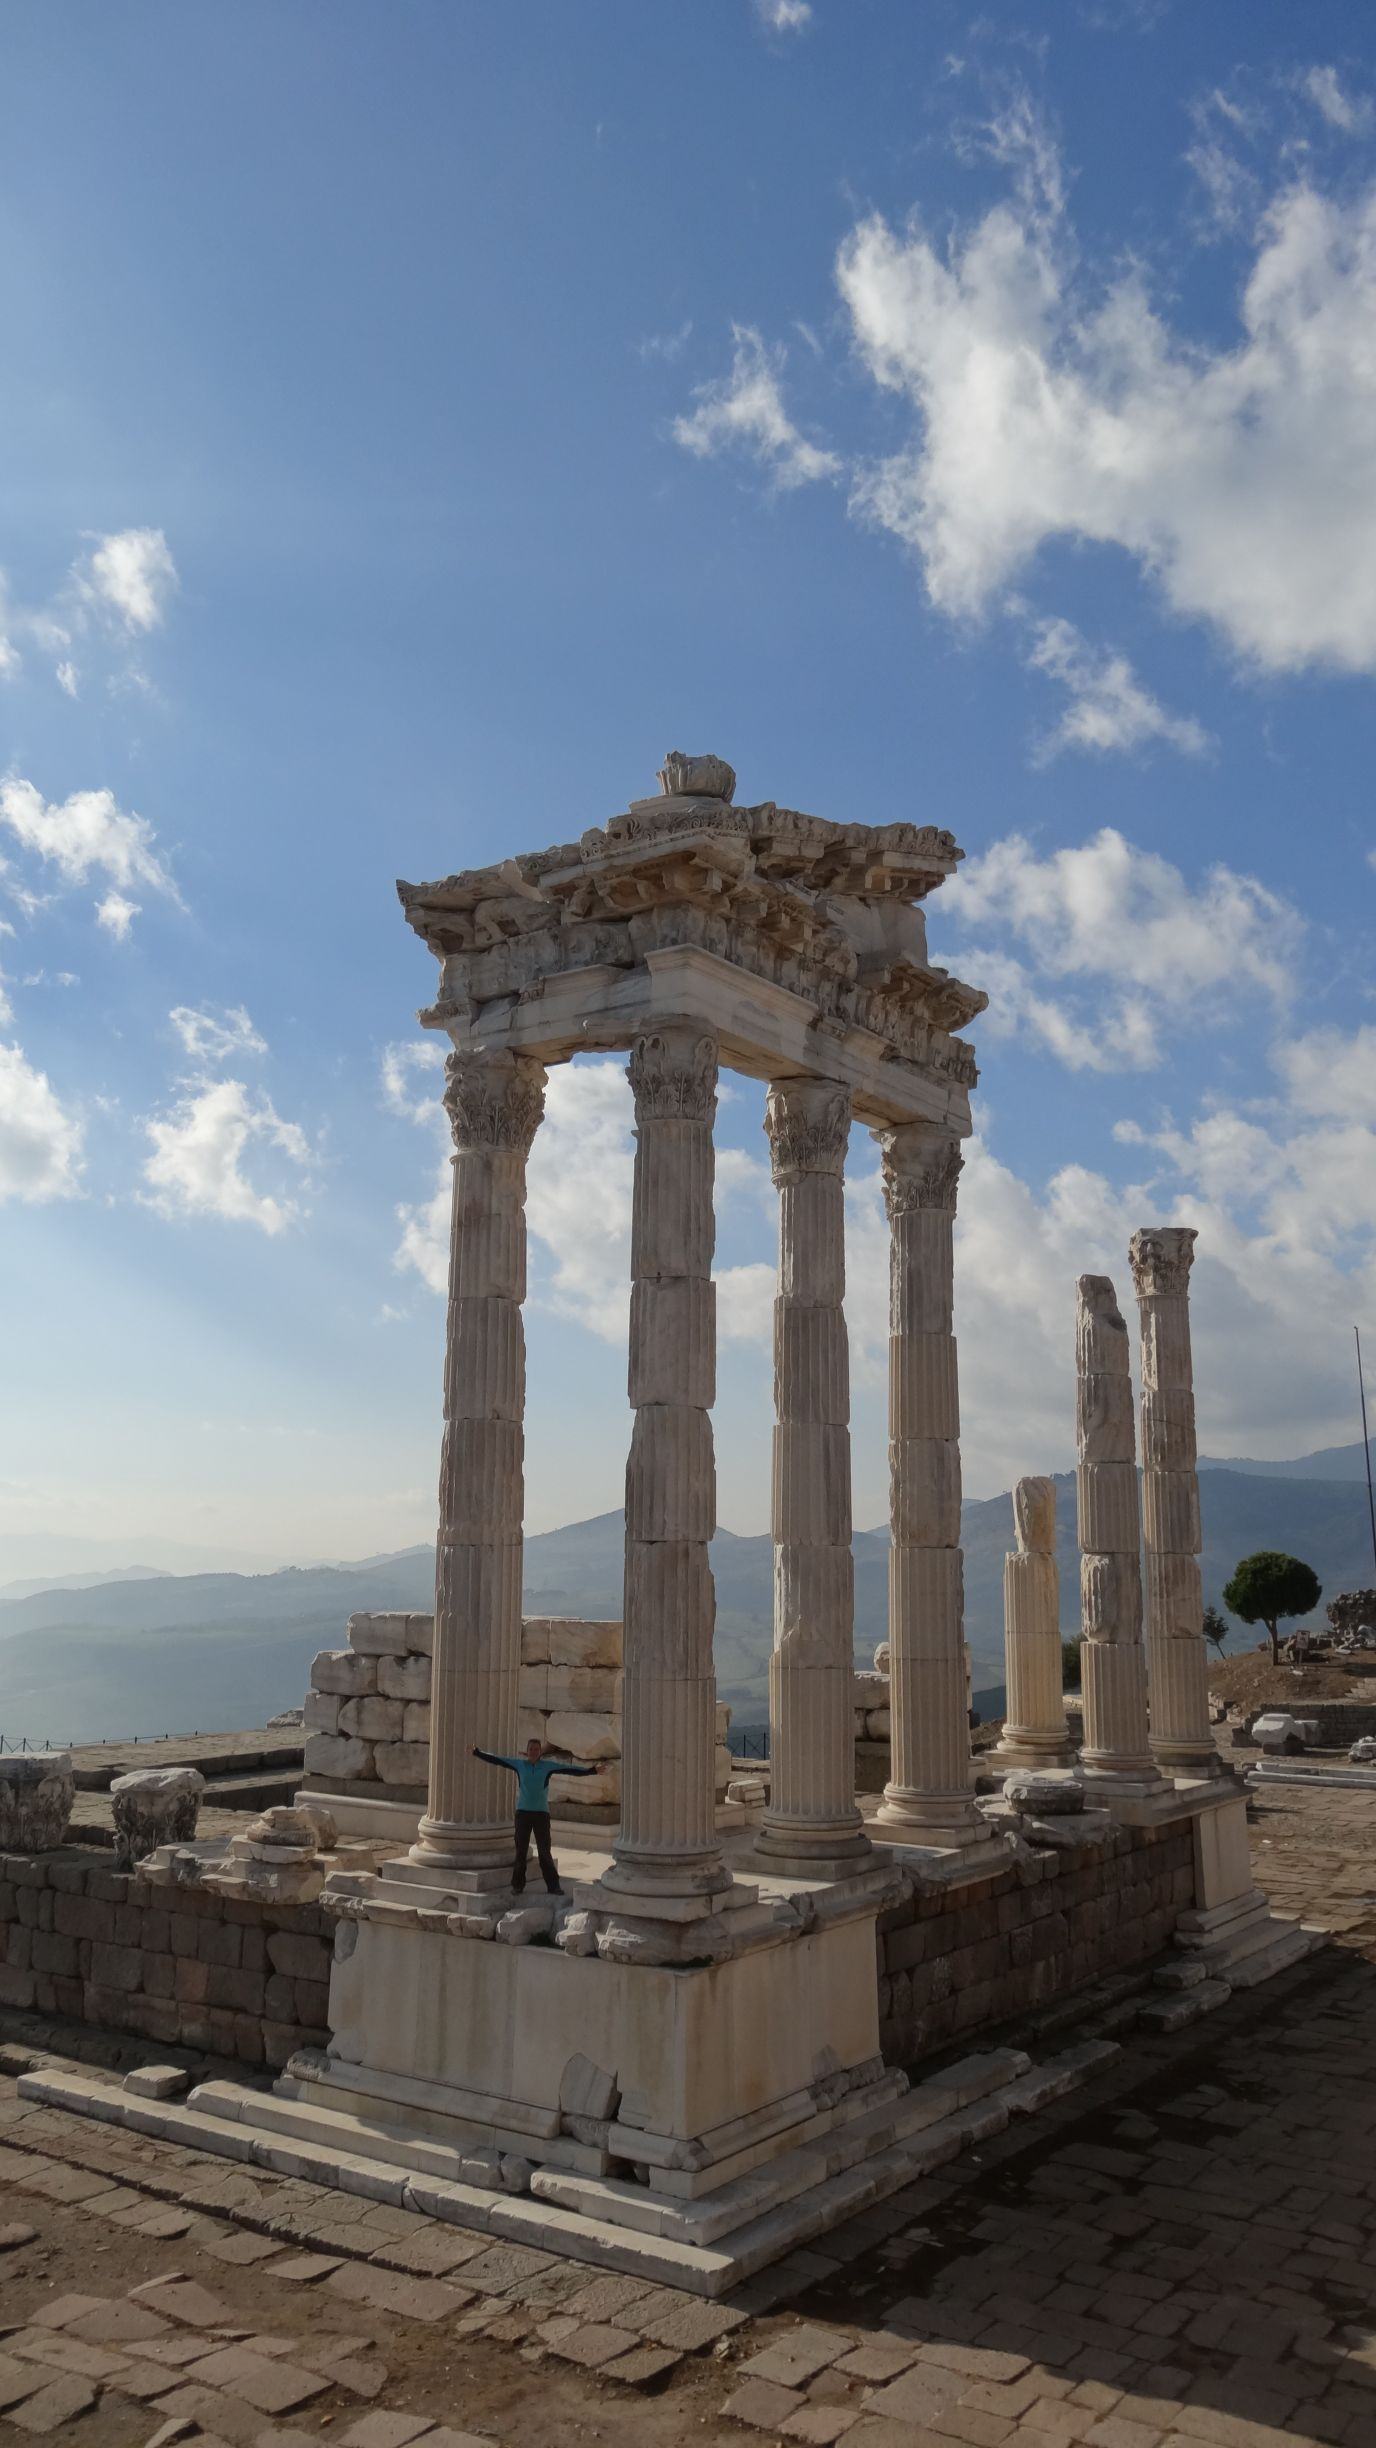 very impressive Temple of Trajan at Pergamon